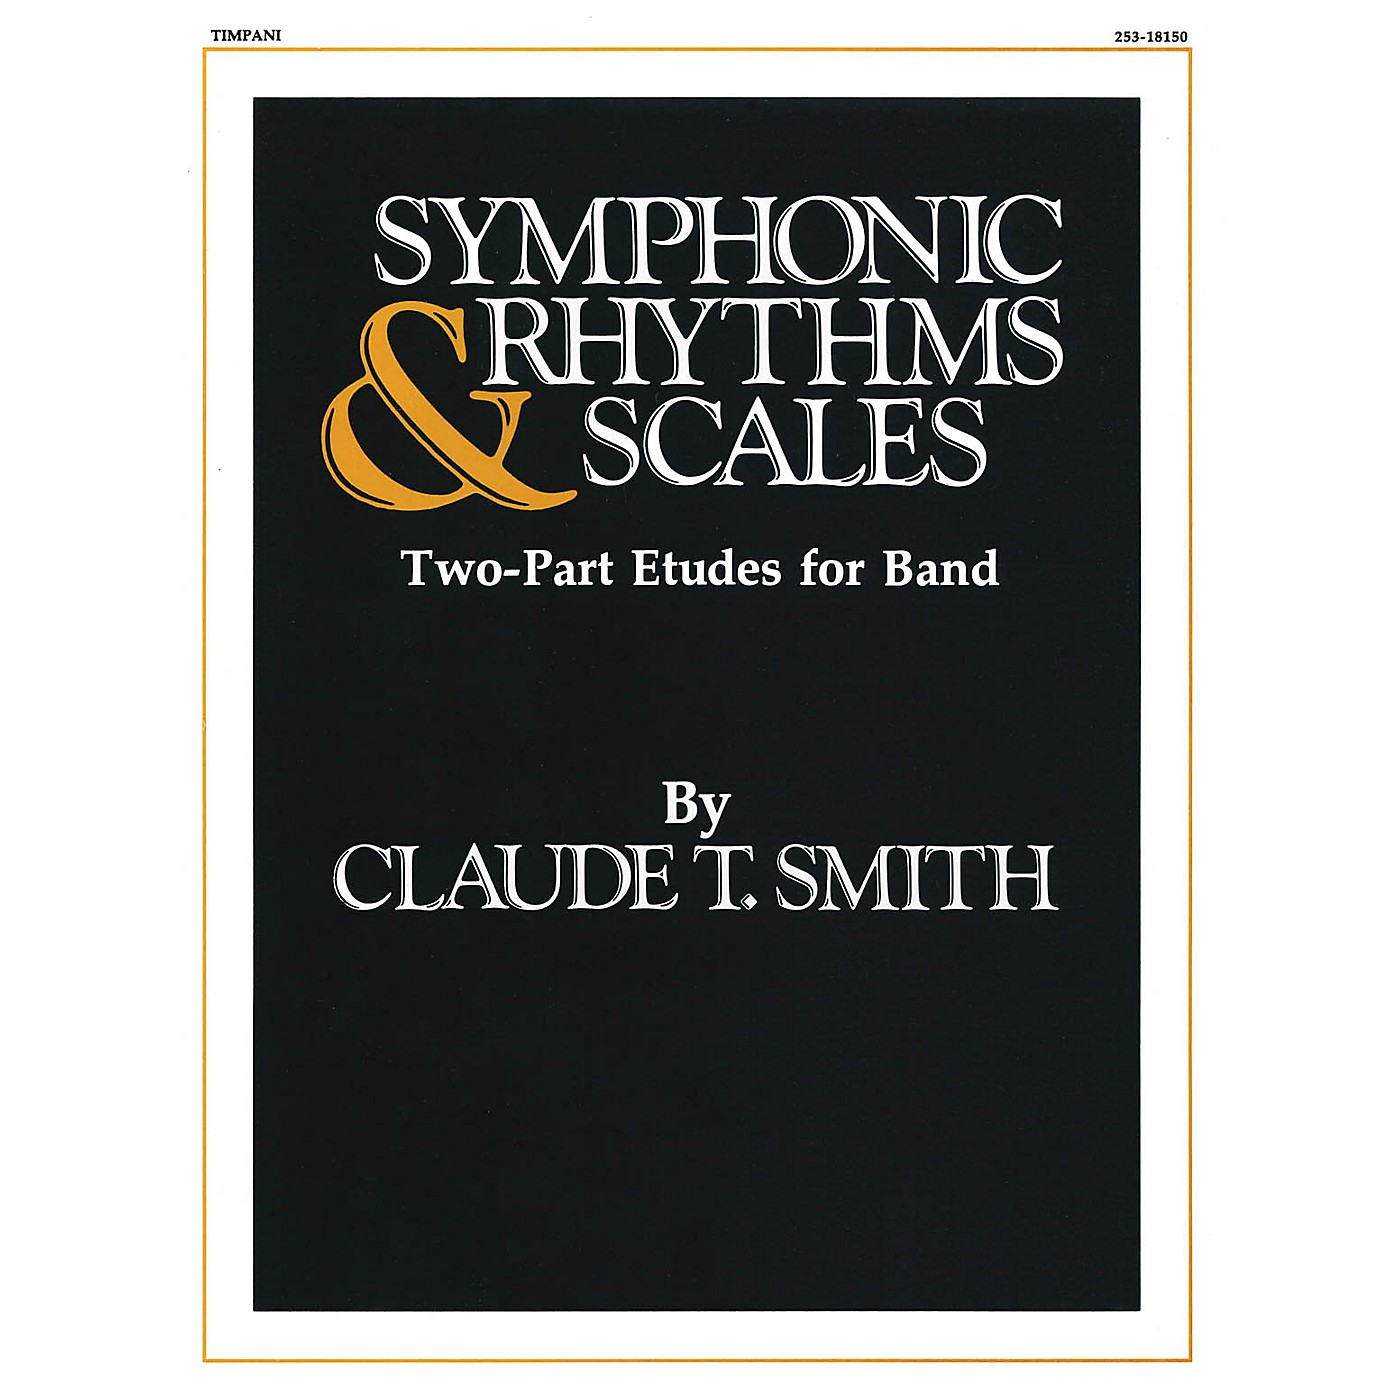 Hal Leonard Symphonic Rhythms & Scales (Two-Part Etudes for Band and Orchestra Timpani) Concert Band Level 2-4 thumbnail